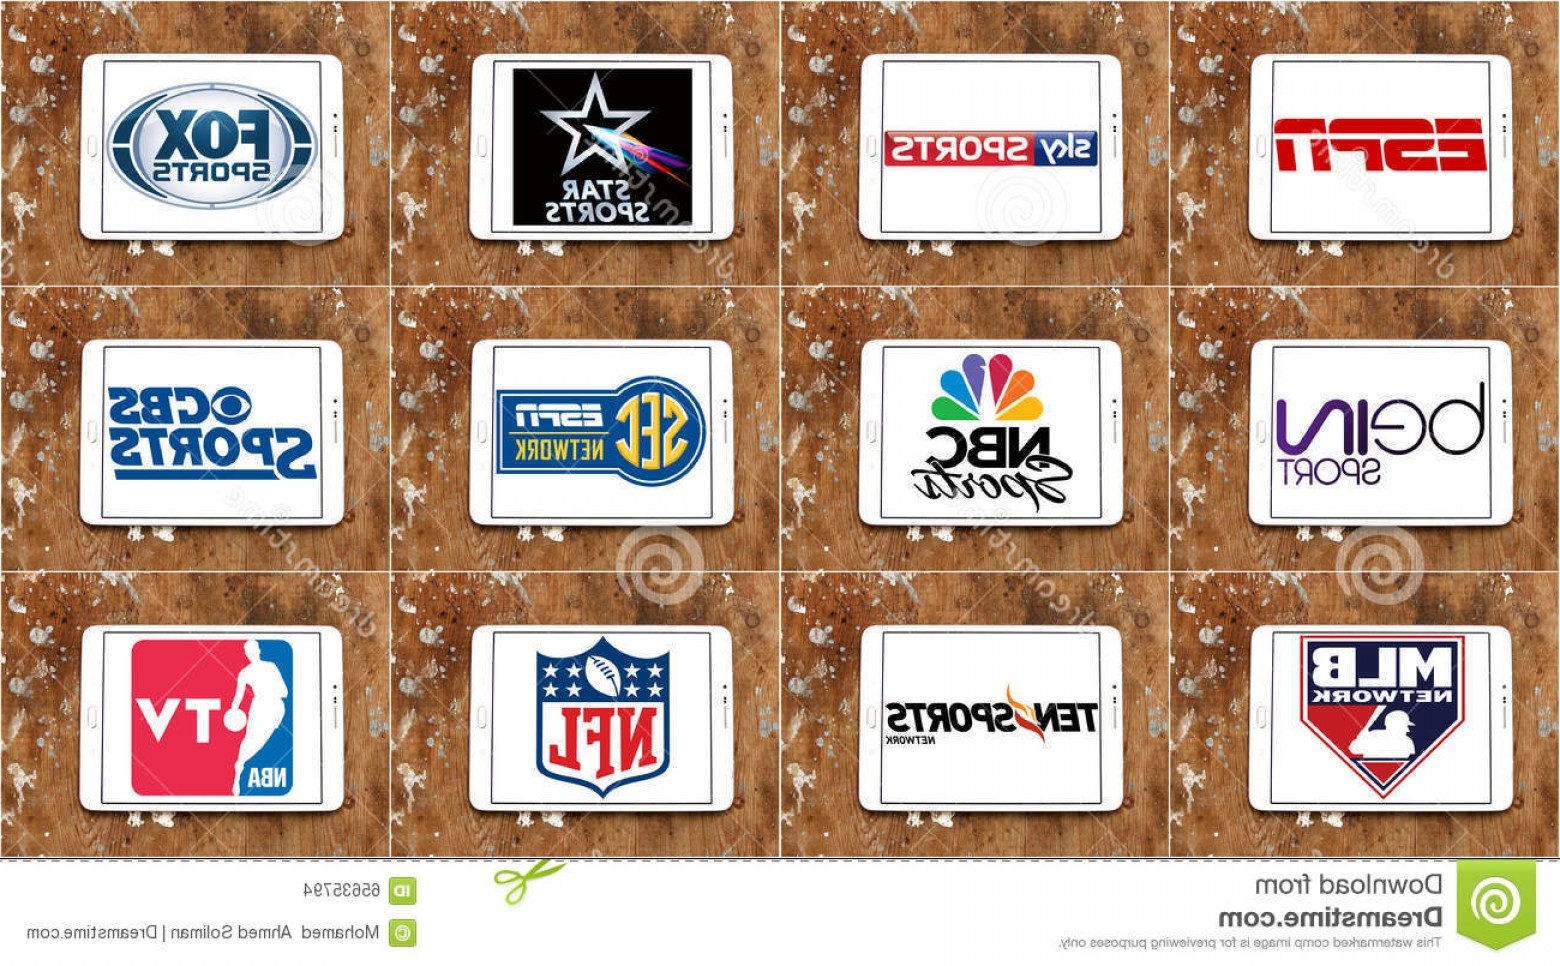 MLB Vectors: Editorial Stock Image Logos Top Famous Tv Sports Channels Networks Collection Vectors Most Popular Television World White Tablet Image